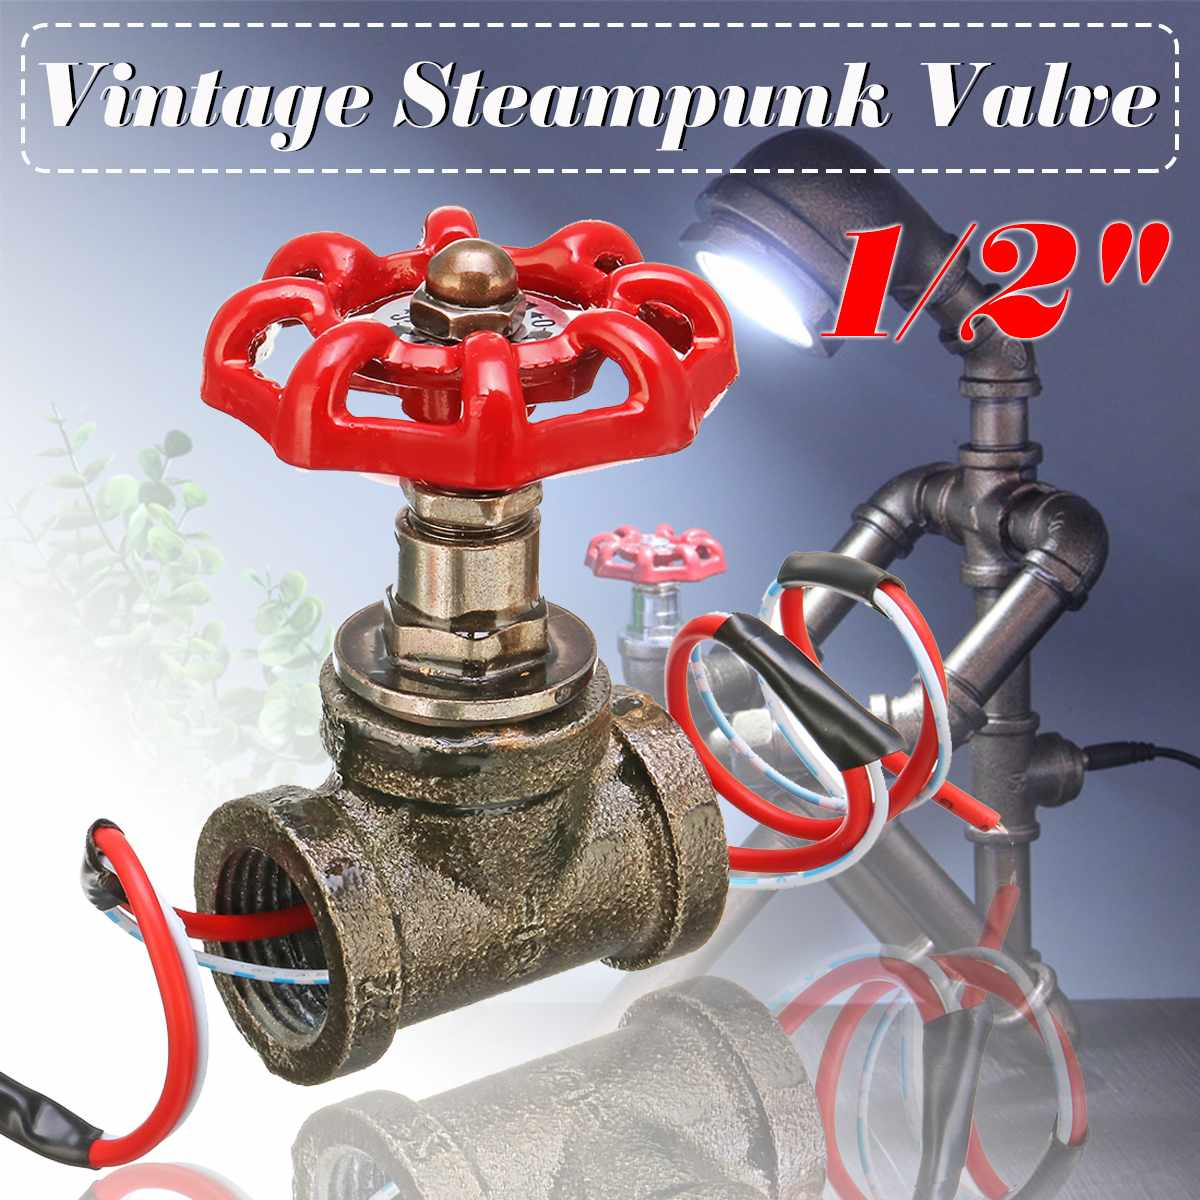 1/2 Inch Stop Light Switch With Wire For Water Pipe Lamps Vintage Steampunk Lamp Loft Style Iron Vintage Table Lamp